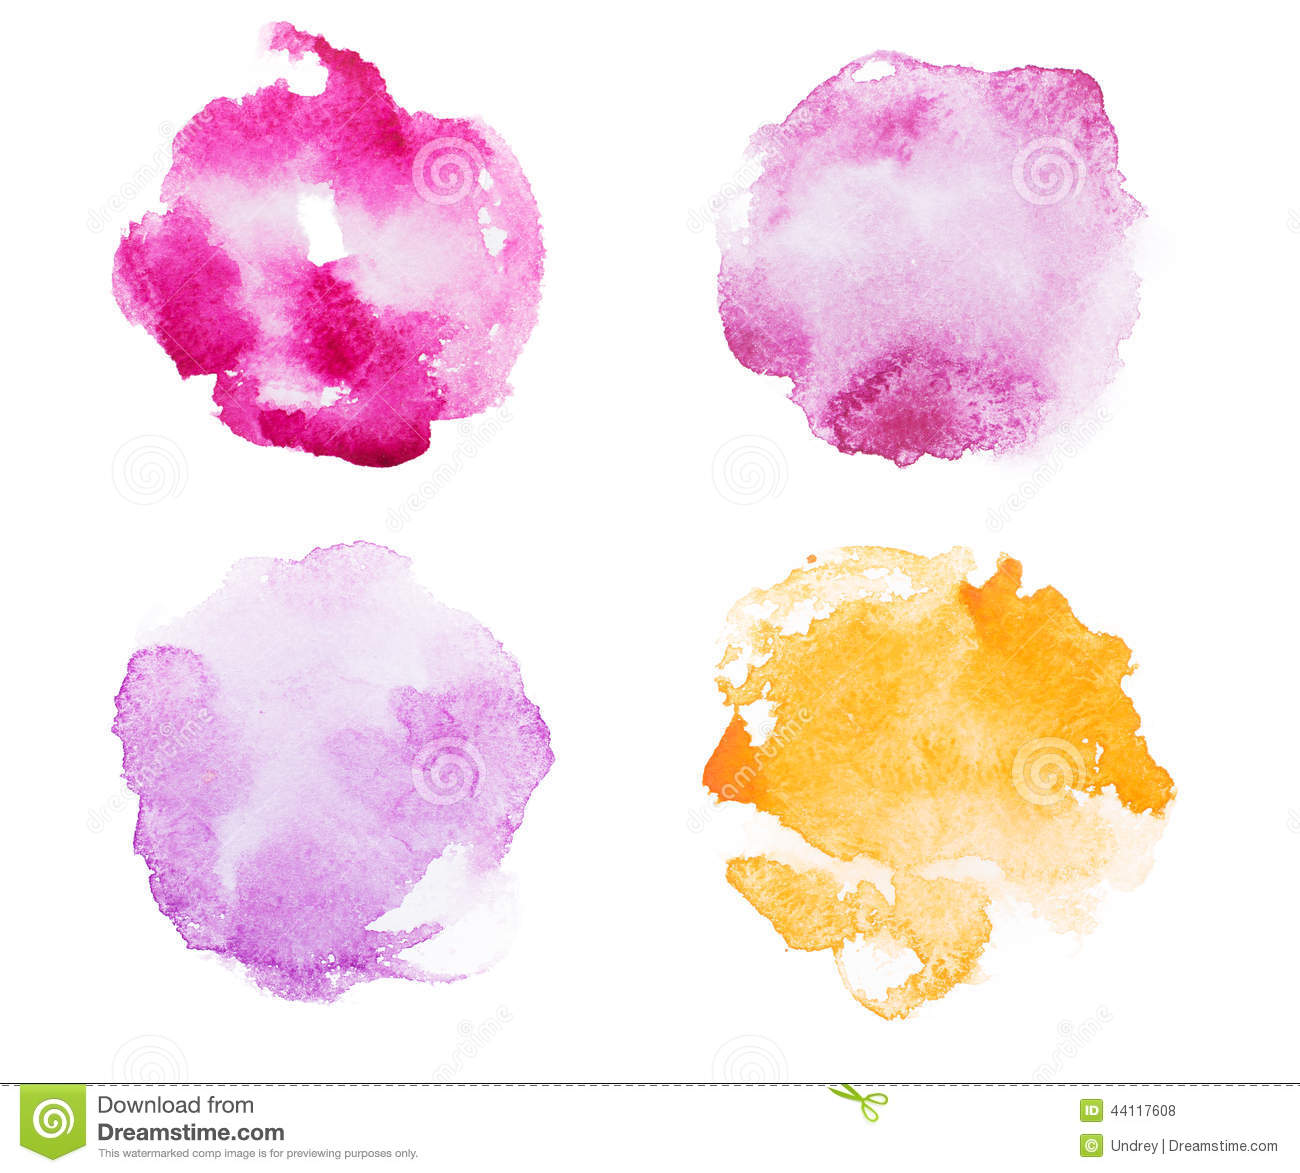 Abstract watercolor aquarelle hand drawn red pink